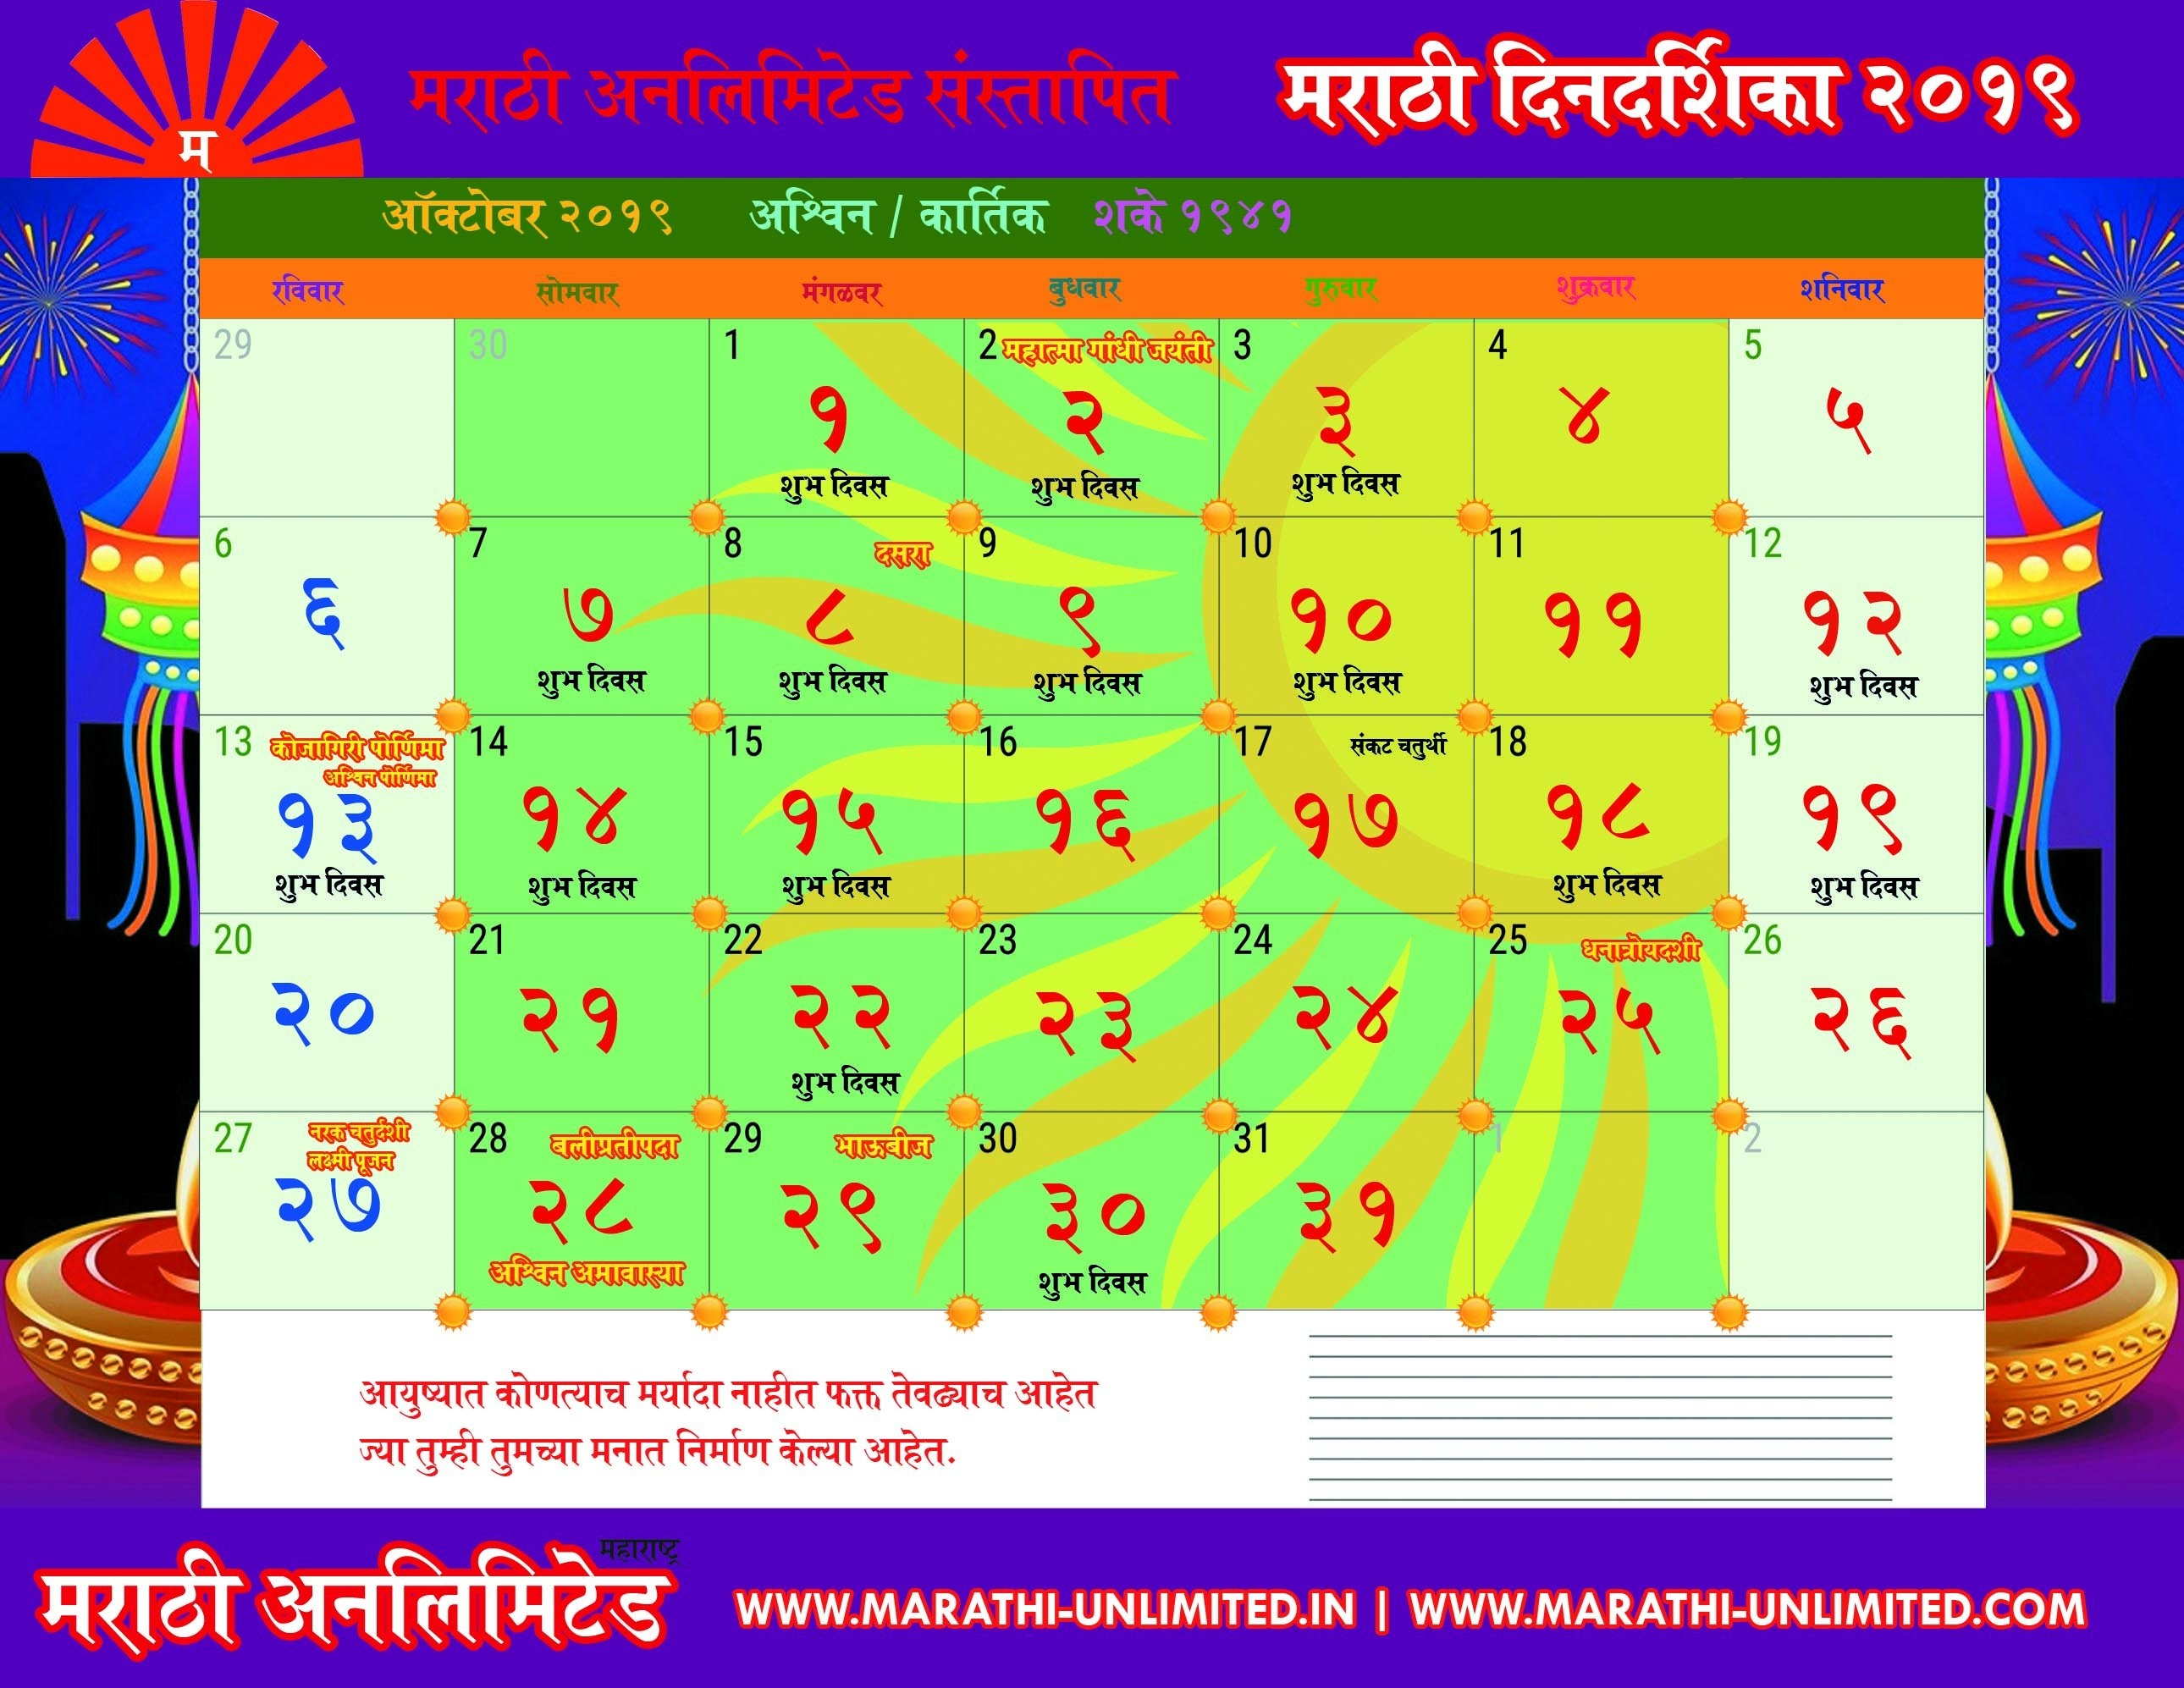 Marathi Calendar 2019 : Important Days Panchang Festivals Calendar Of 2019 In Marathi